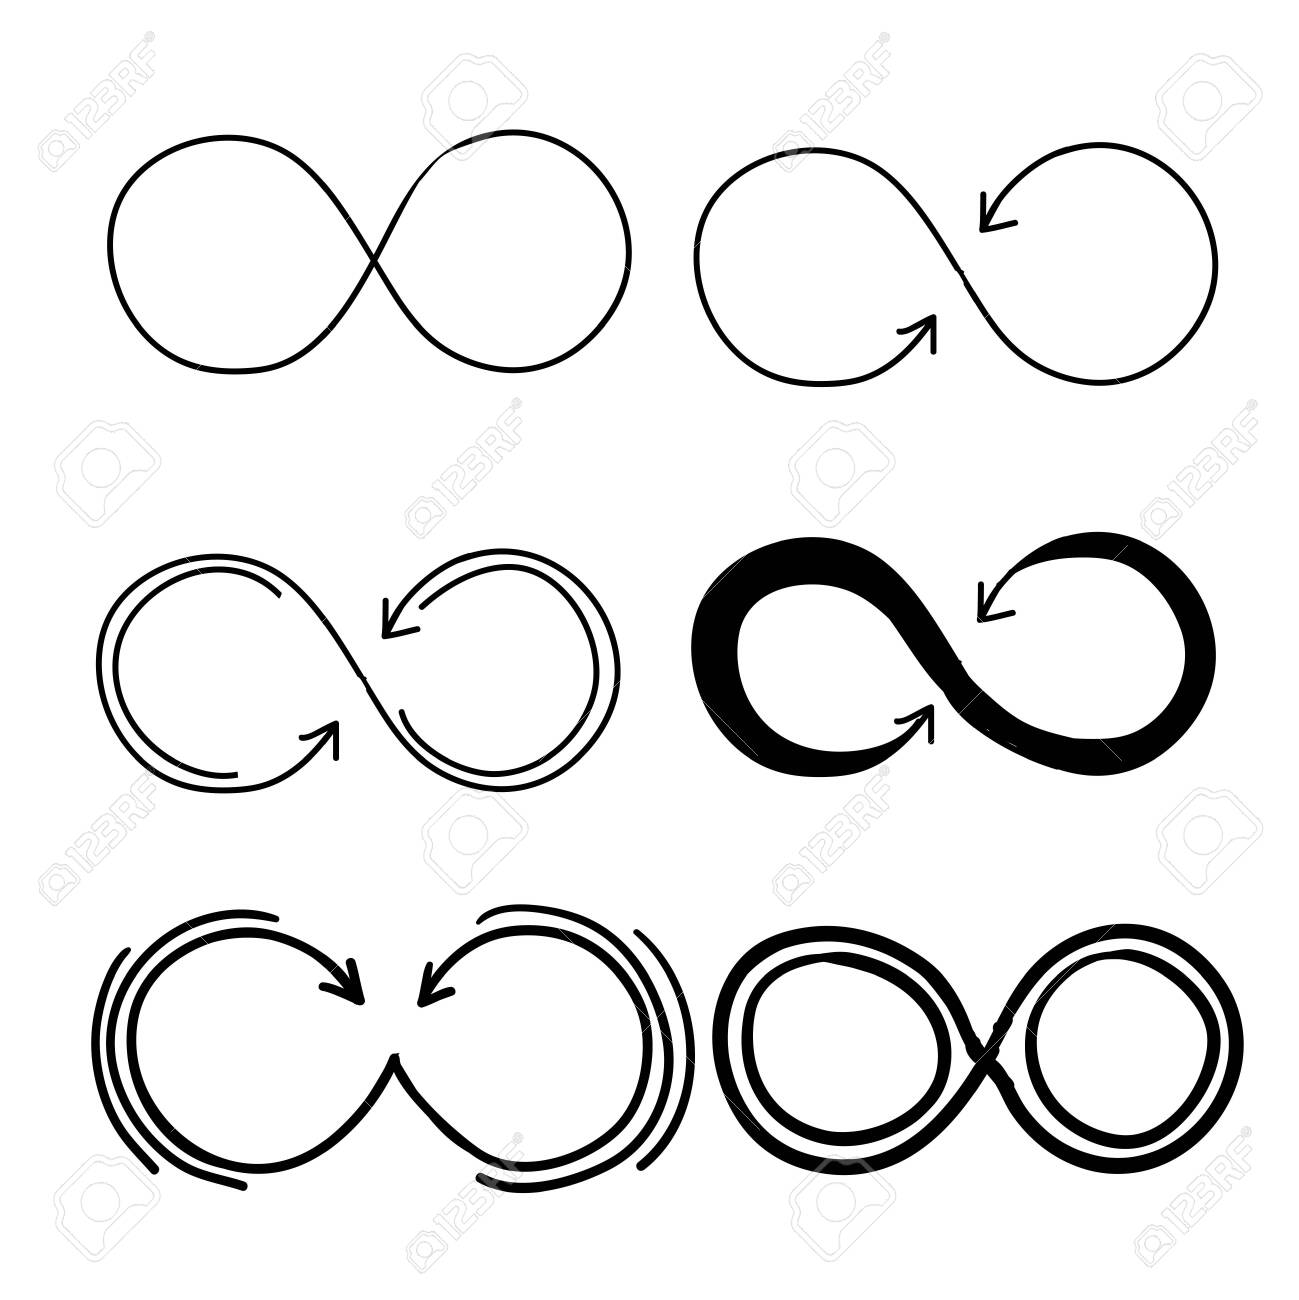 Eternity icon. Mobius line vector logo infinity symbols with handdrawn doodle style vector - 137778838